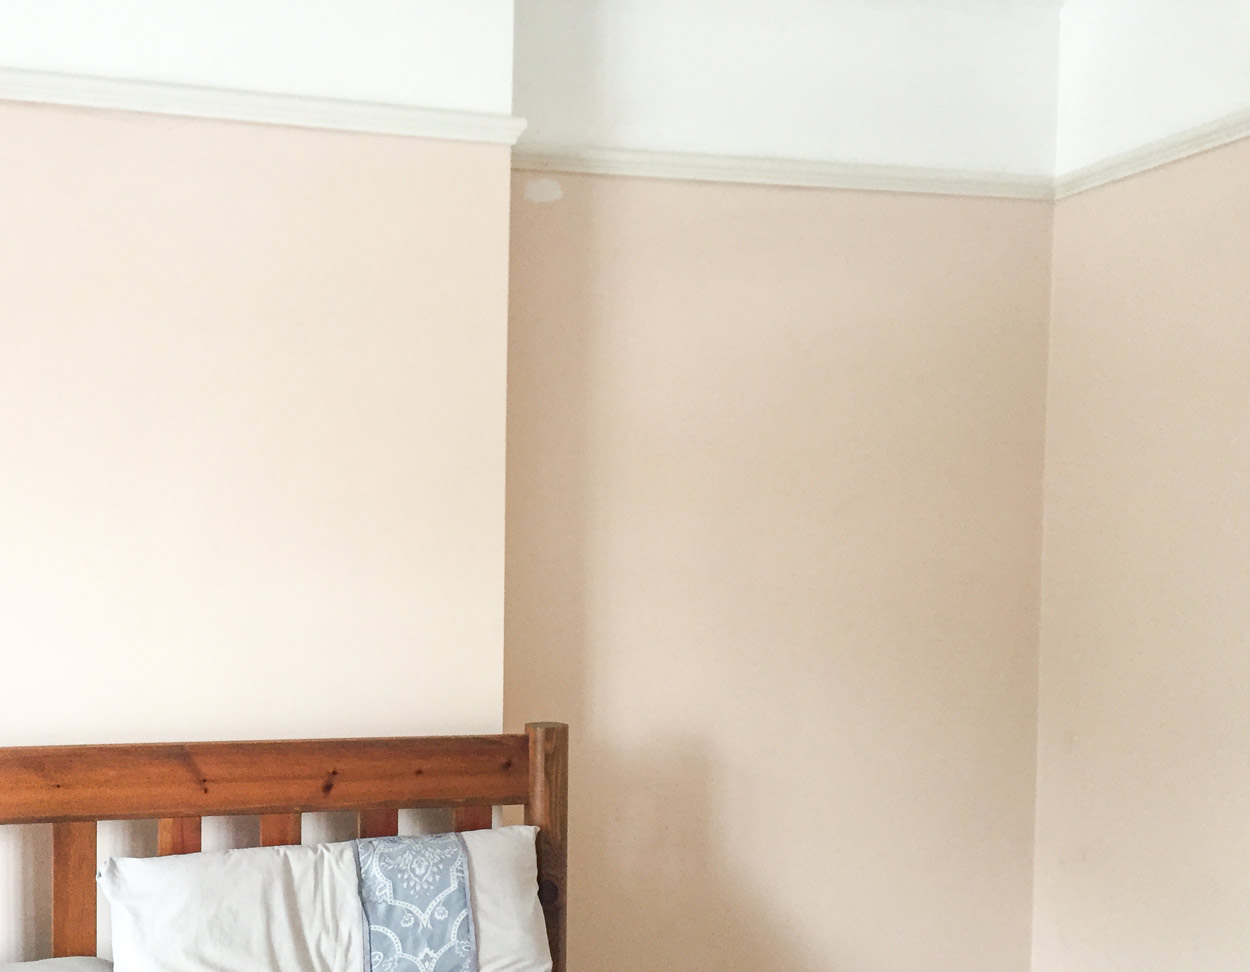 Leesa-Mattress-review--before-and-after-bedroom---eygptian-cotton-renovation-thebeautytype.com-